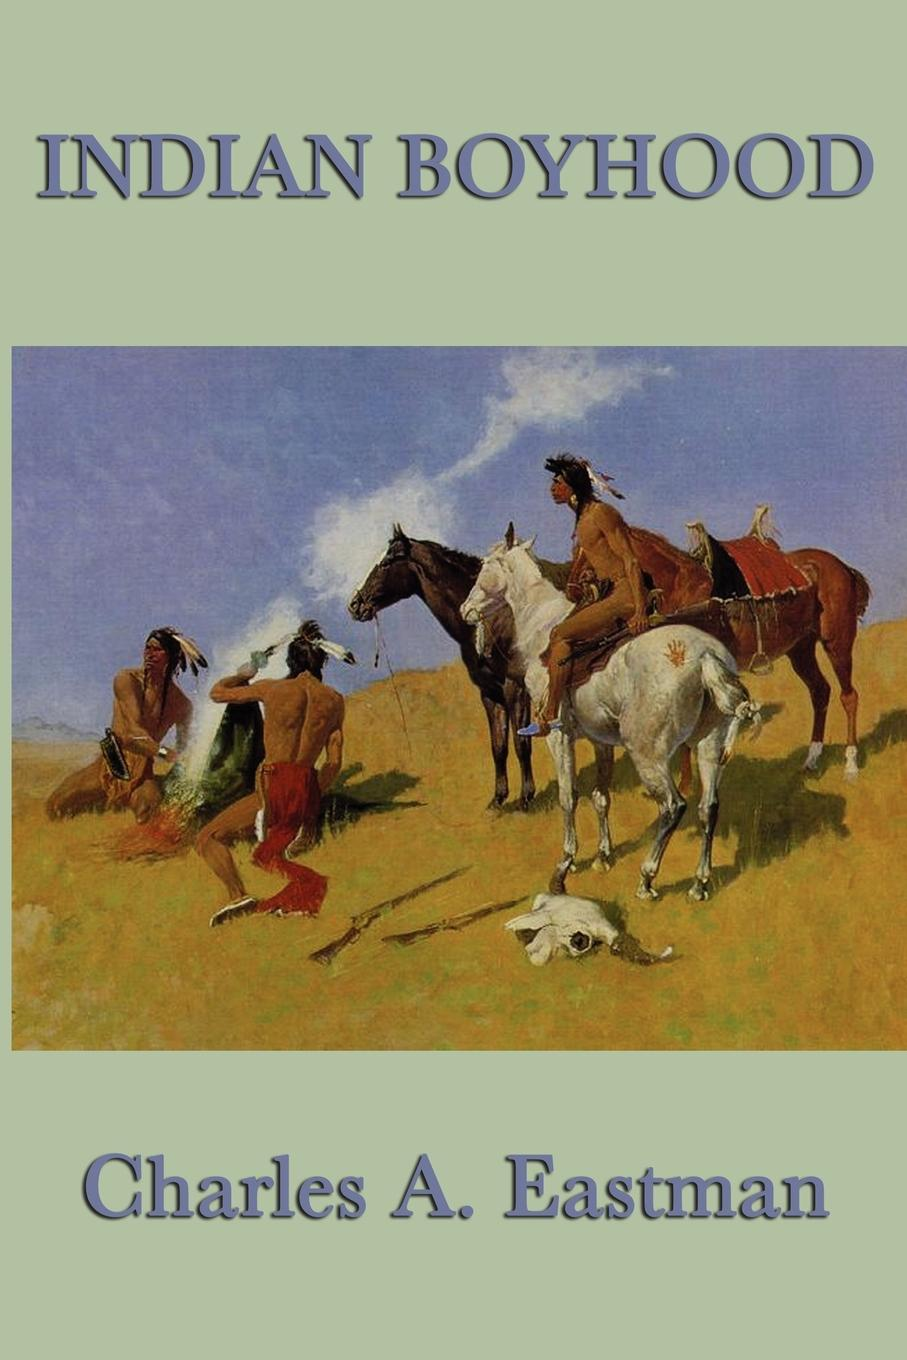 цена на Charles A. Eastman Indian Boyhood